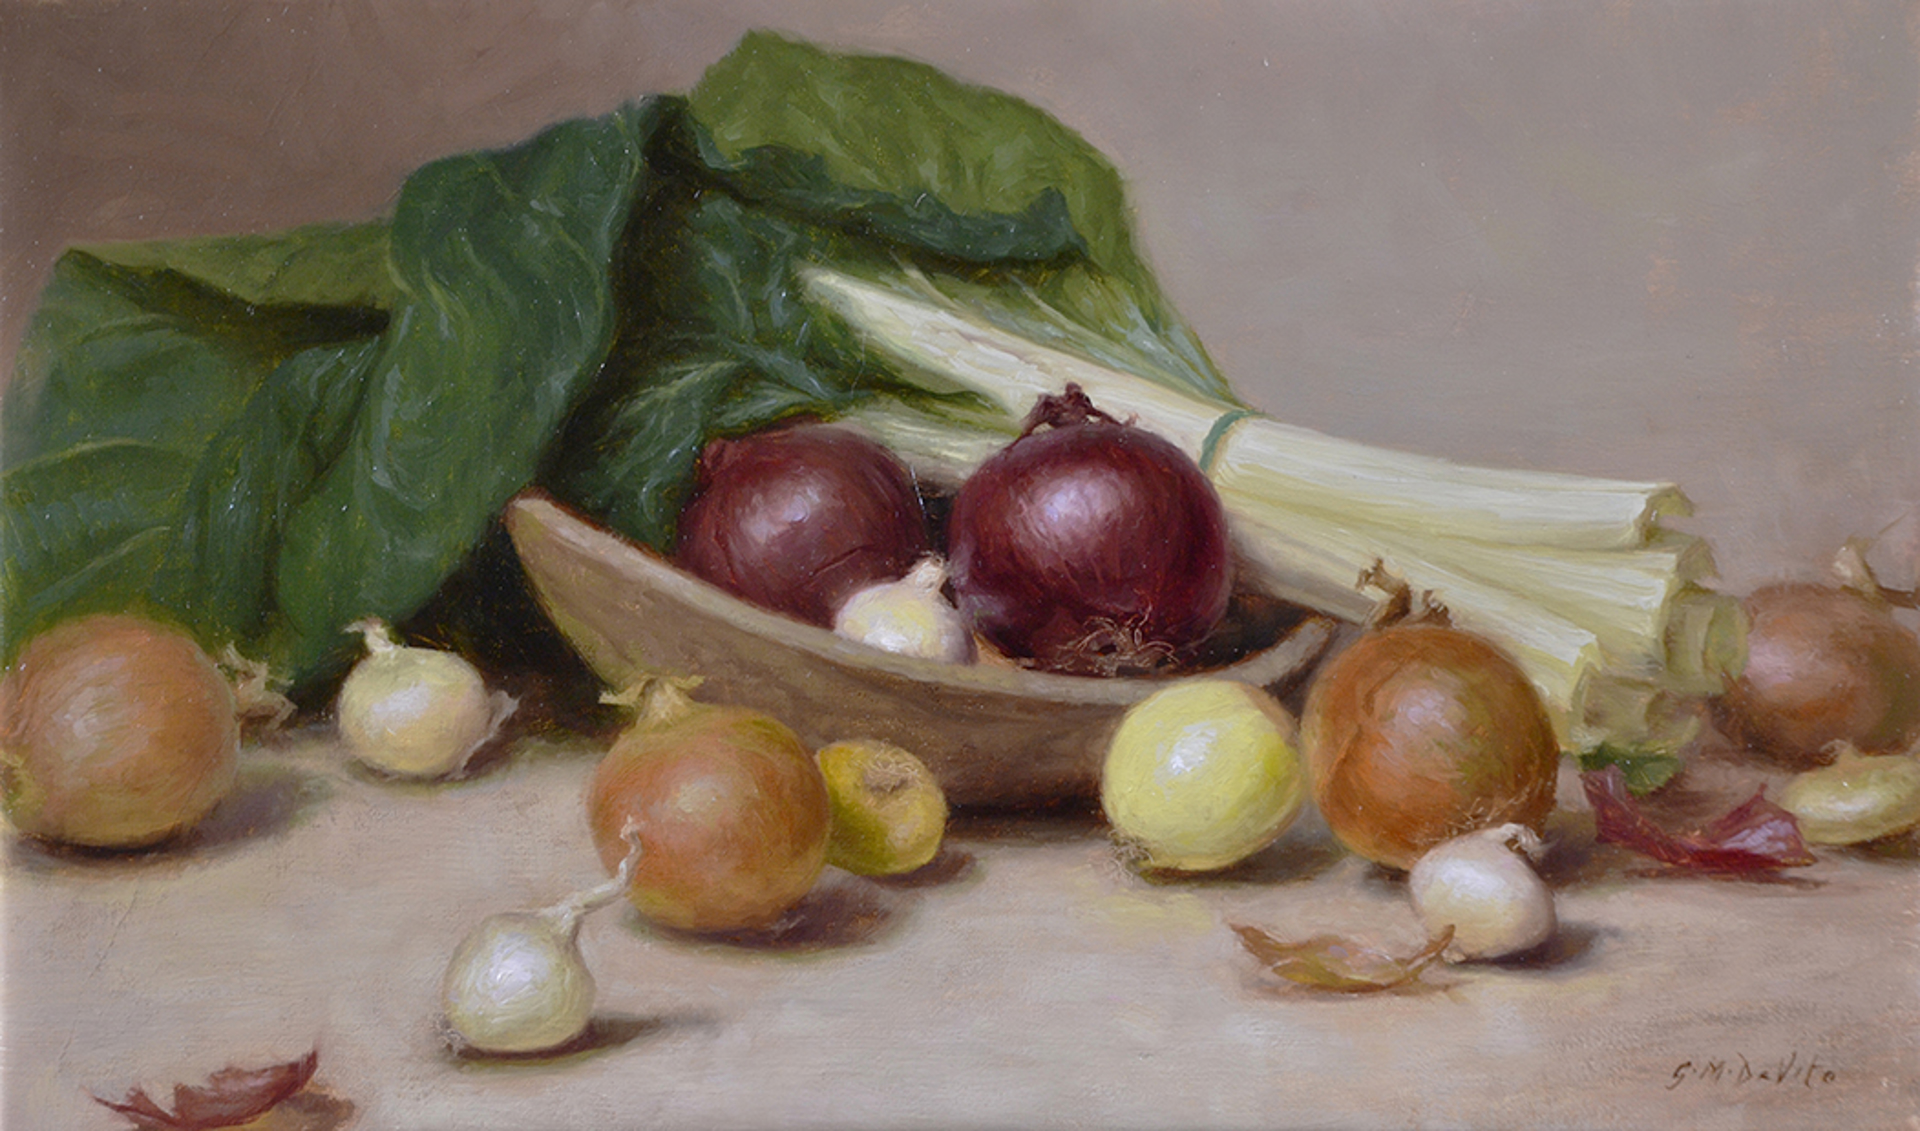 Onions and Swiss Chard by GRACE DeVITO